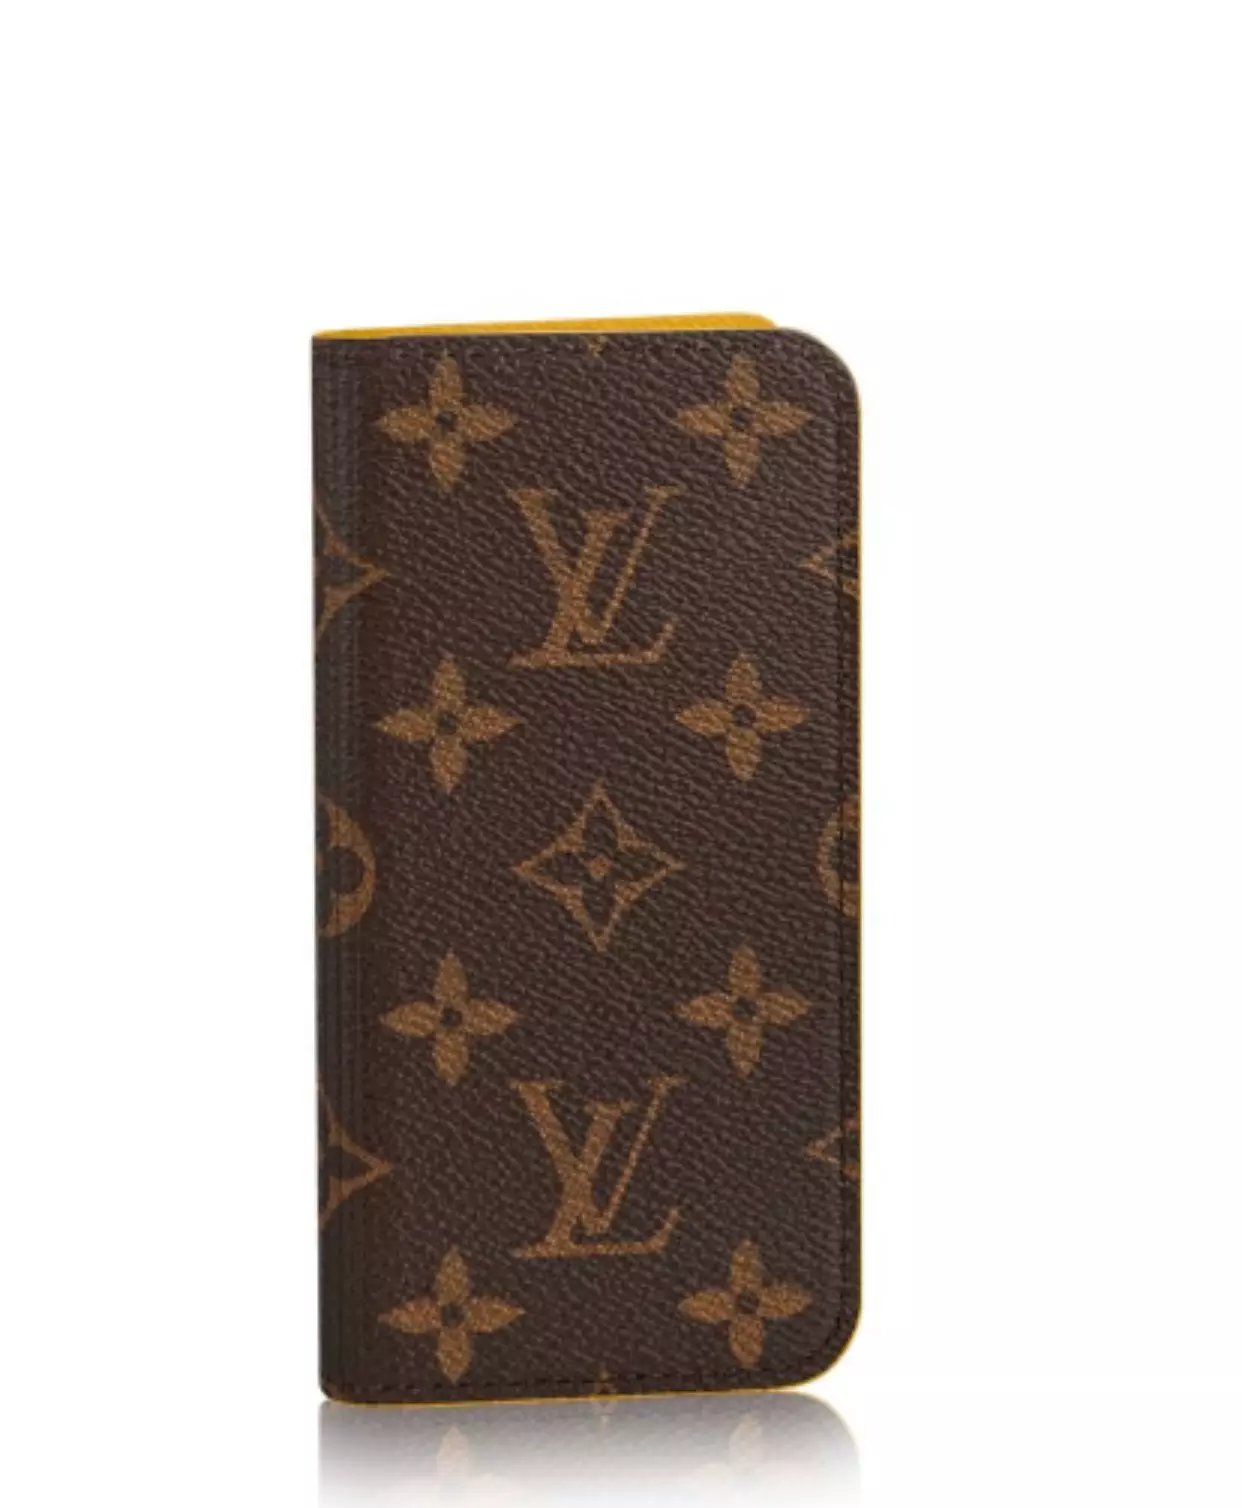 best cases iphone 8 custom iphone 8 cover Louis Vuitton iphone 8 case iphone accessories online iphone 8 covers iphone 8 iphone case cover for mobile customize phone design your own iphone 8 case